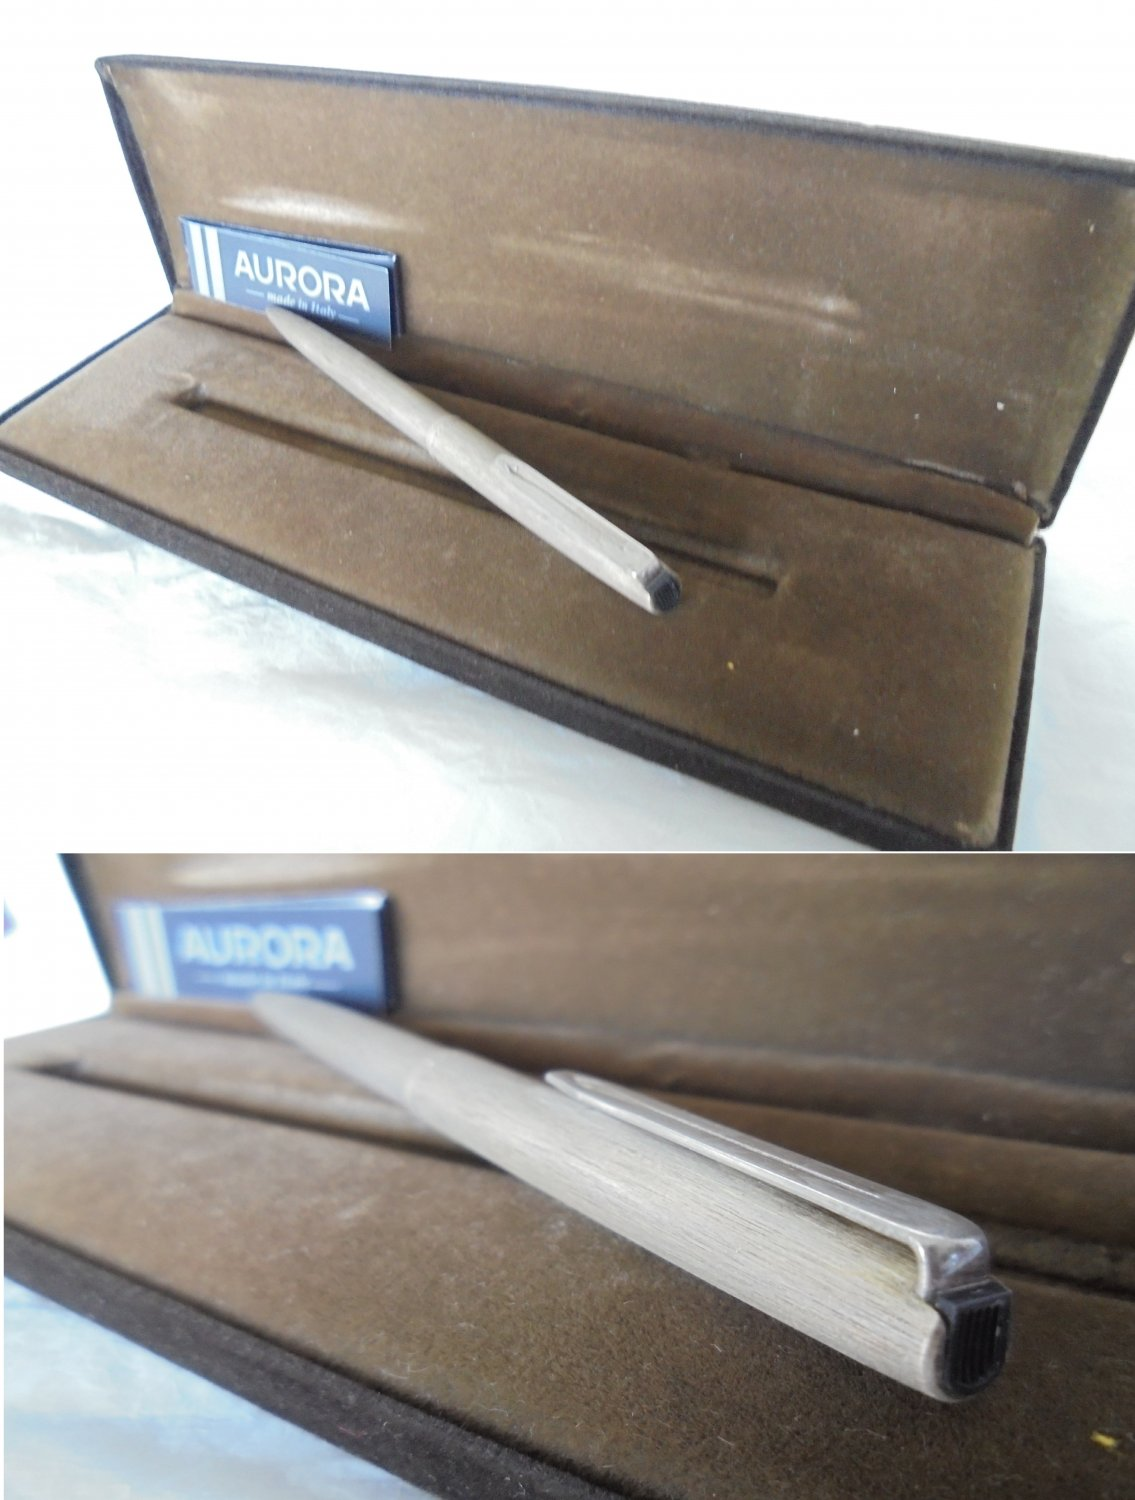 AURORA 98 ball point pen in brushed STERLING SILVER 925 In gift box